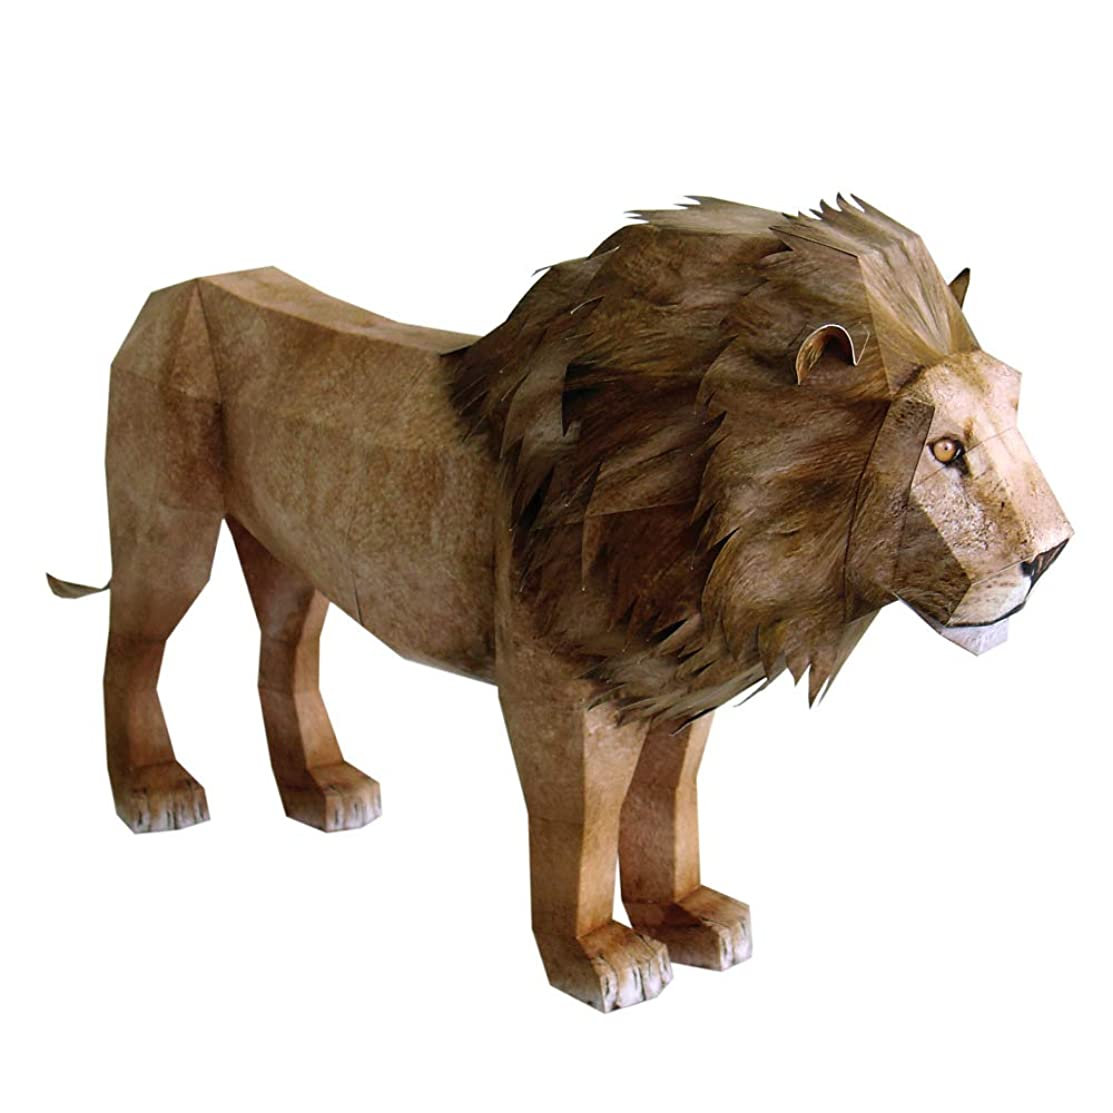 HAPPYPAPER Wild Animal Lion Low Poly DIY Papercraft Puzzle Kit for Adults & Teens - NO Scissors Needed